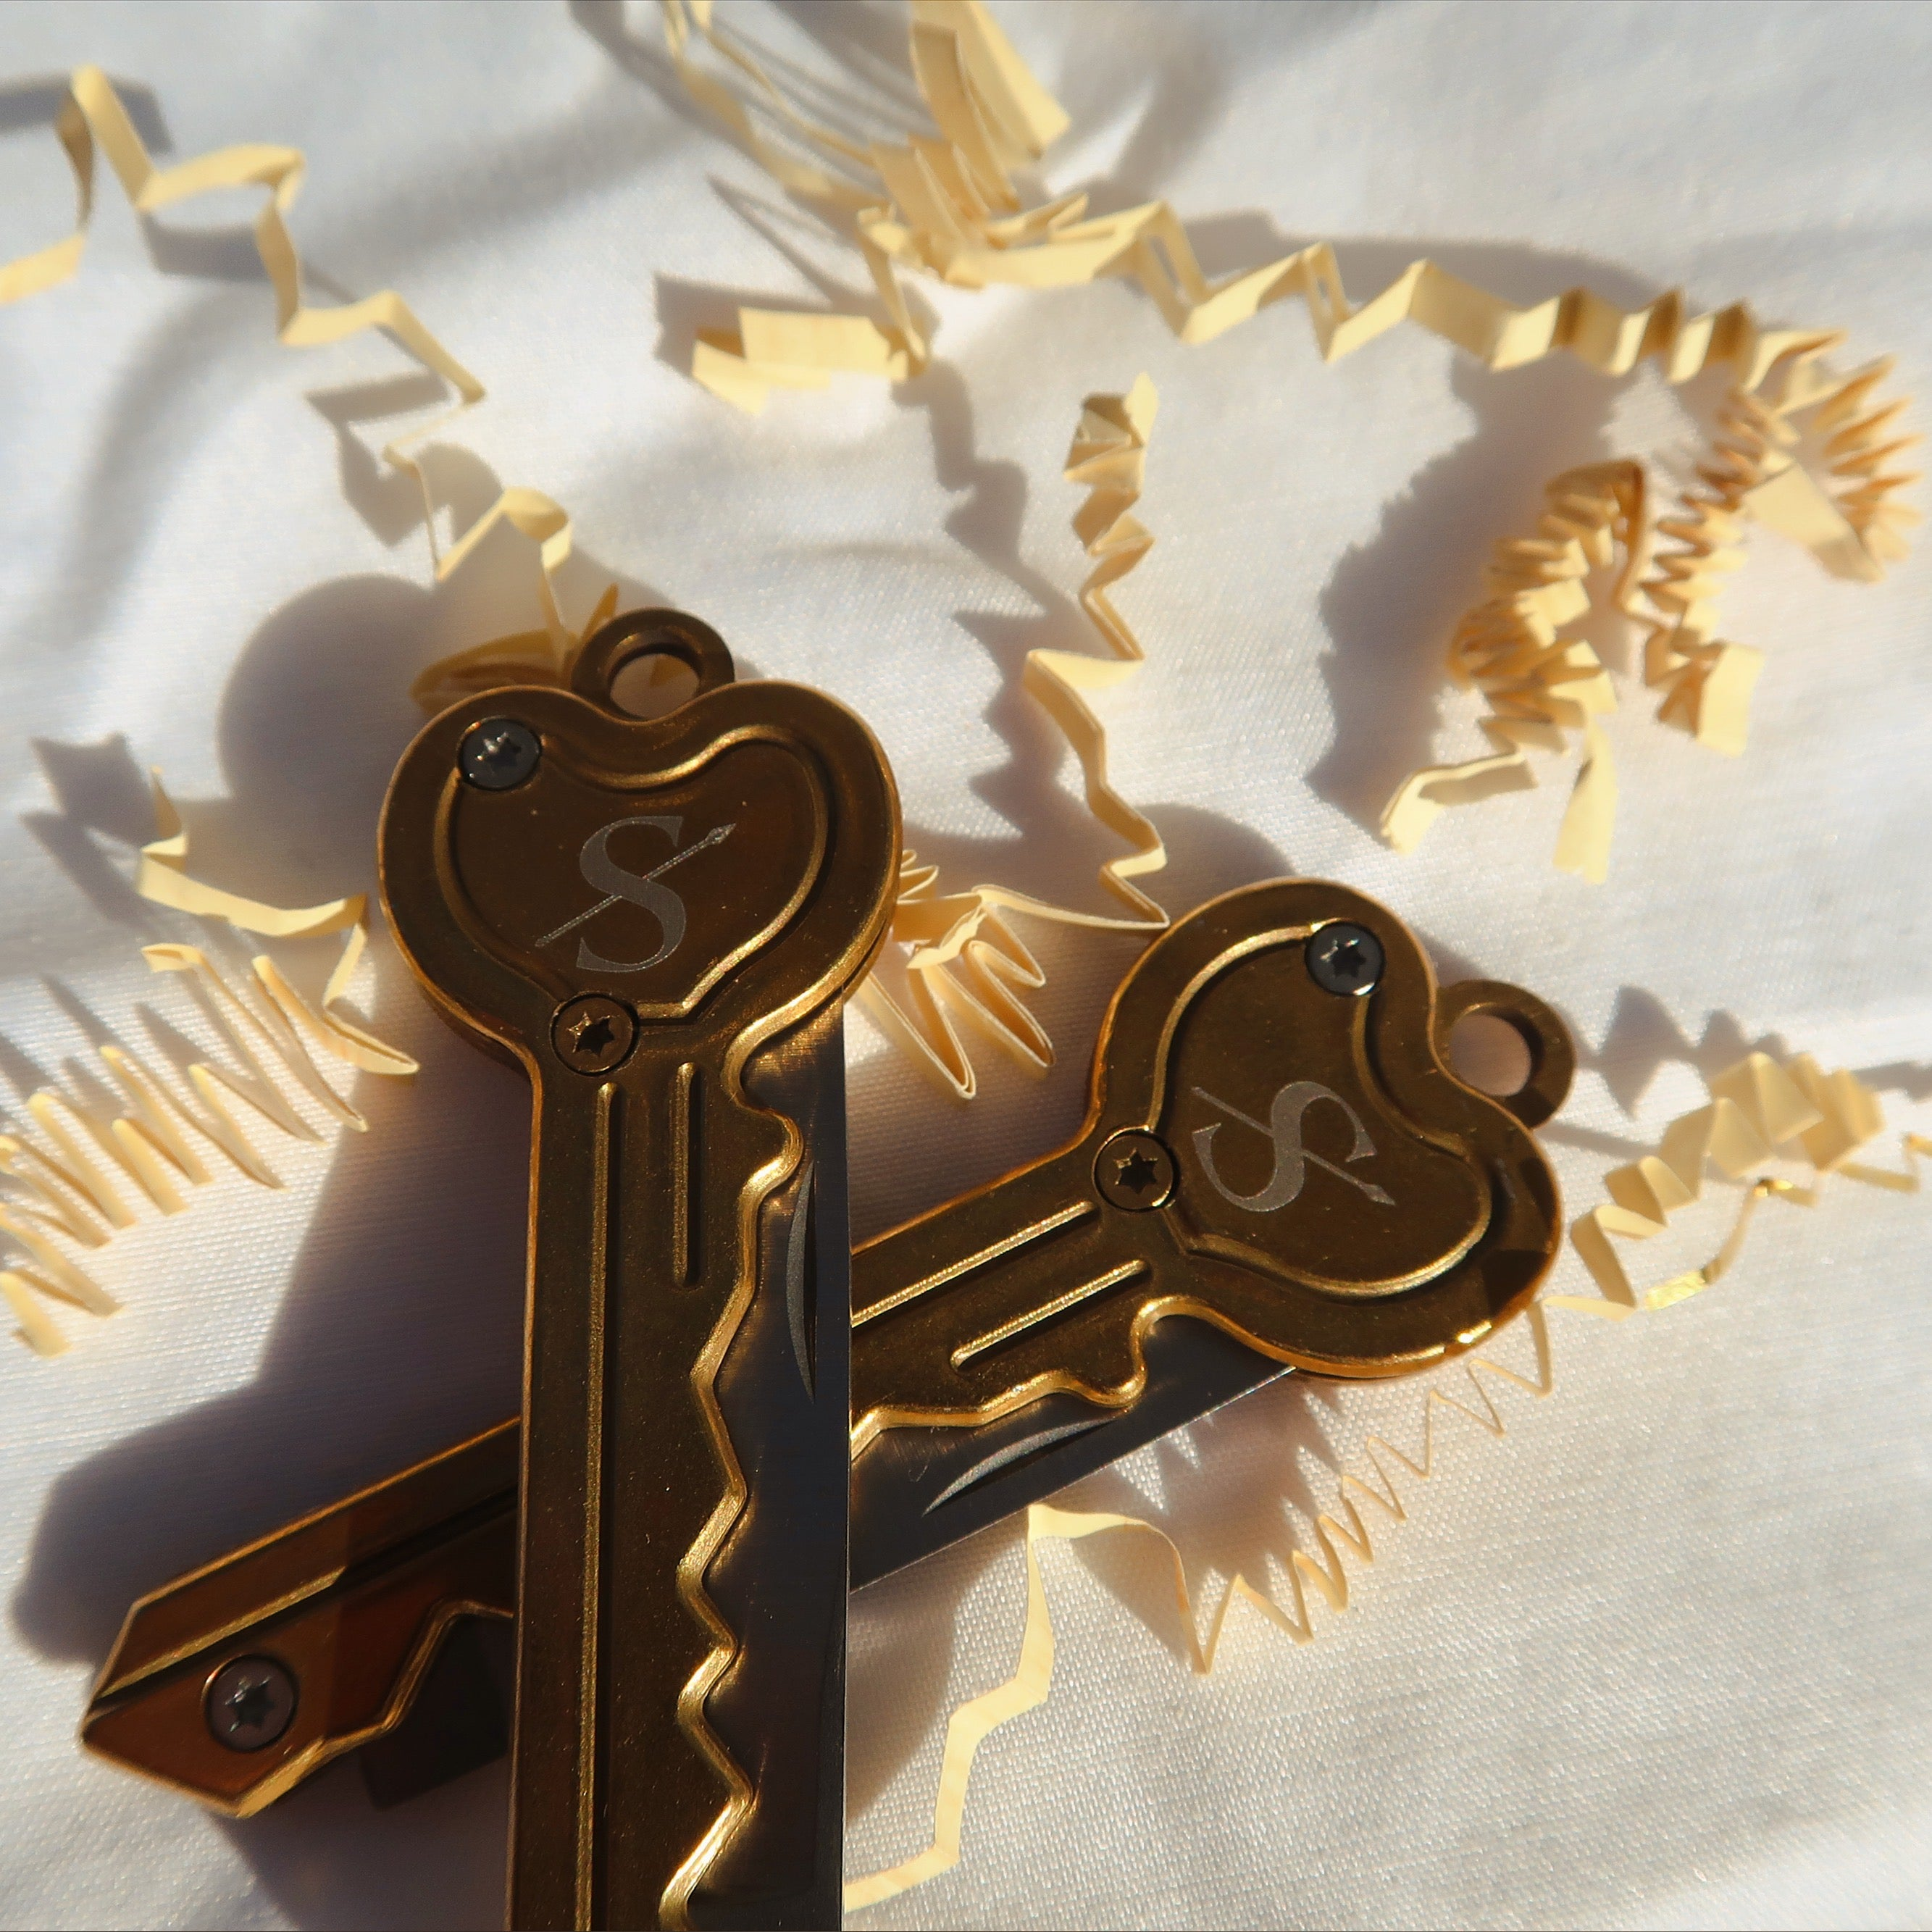 Gold Heart Key Knife